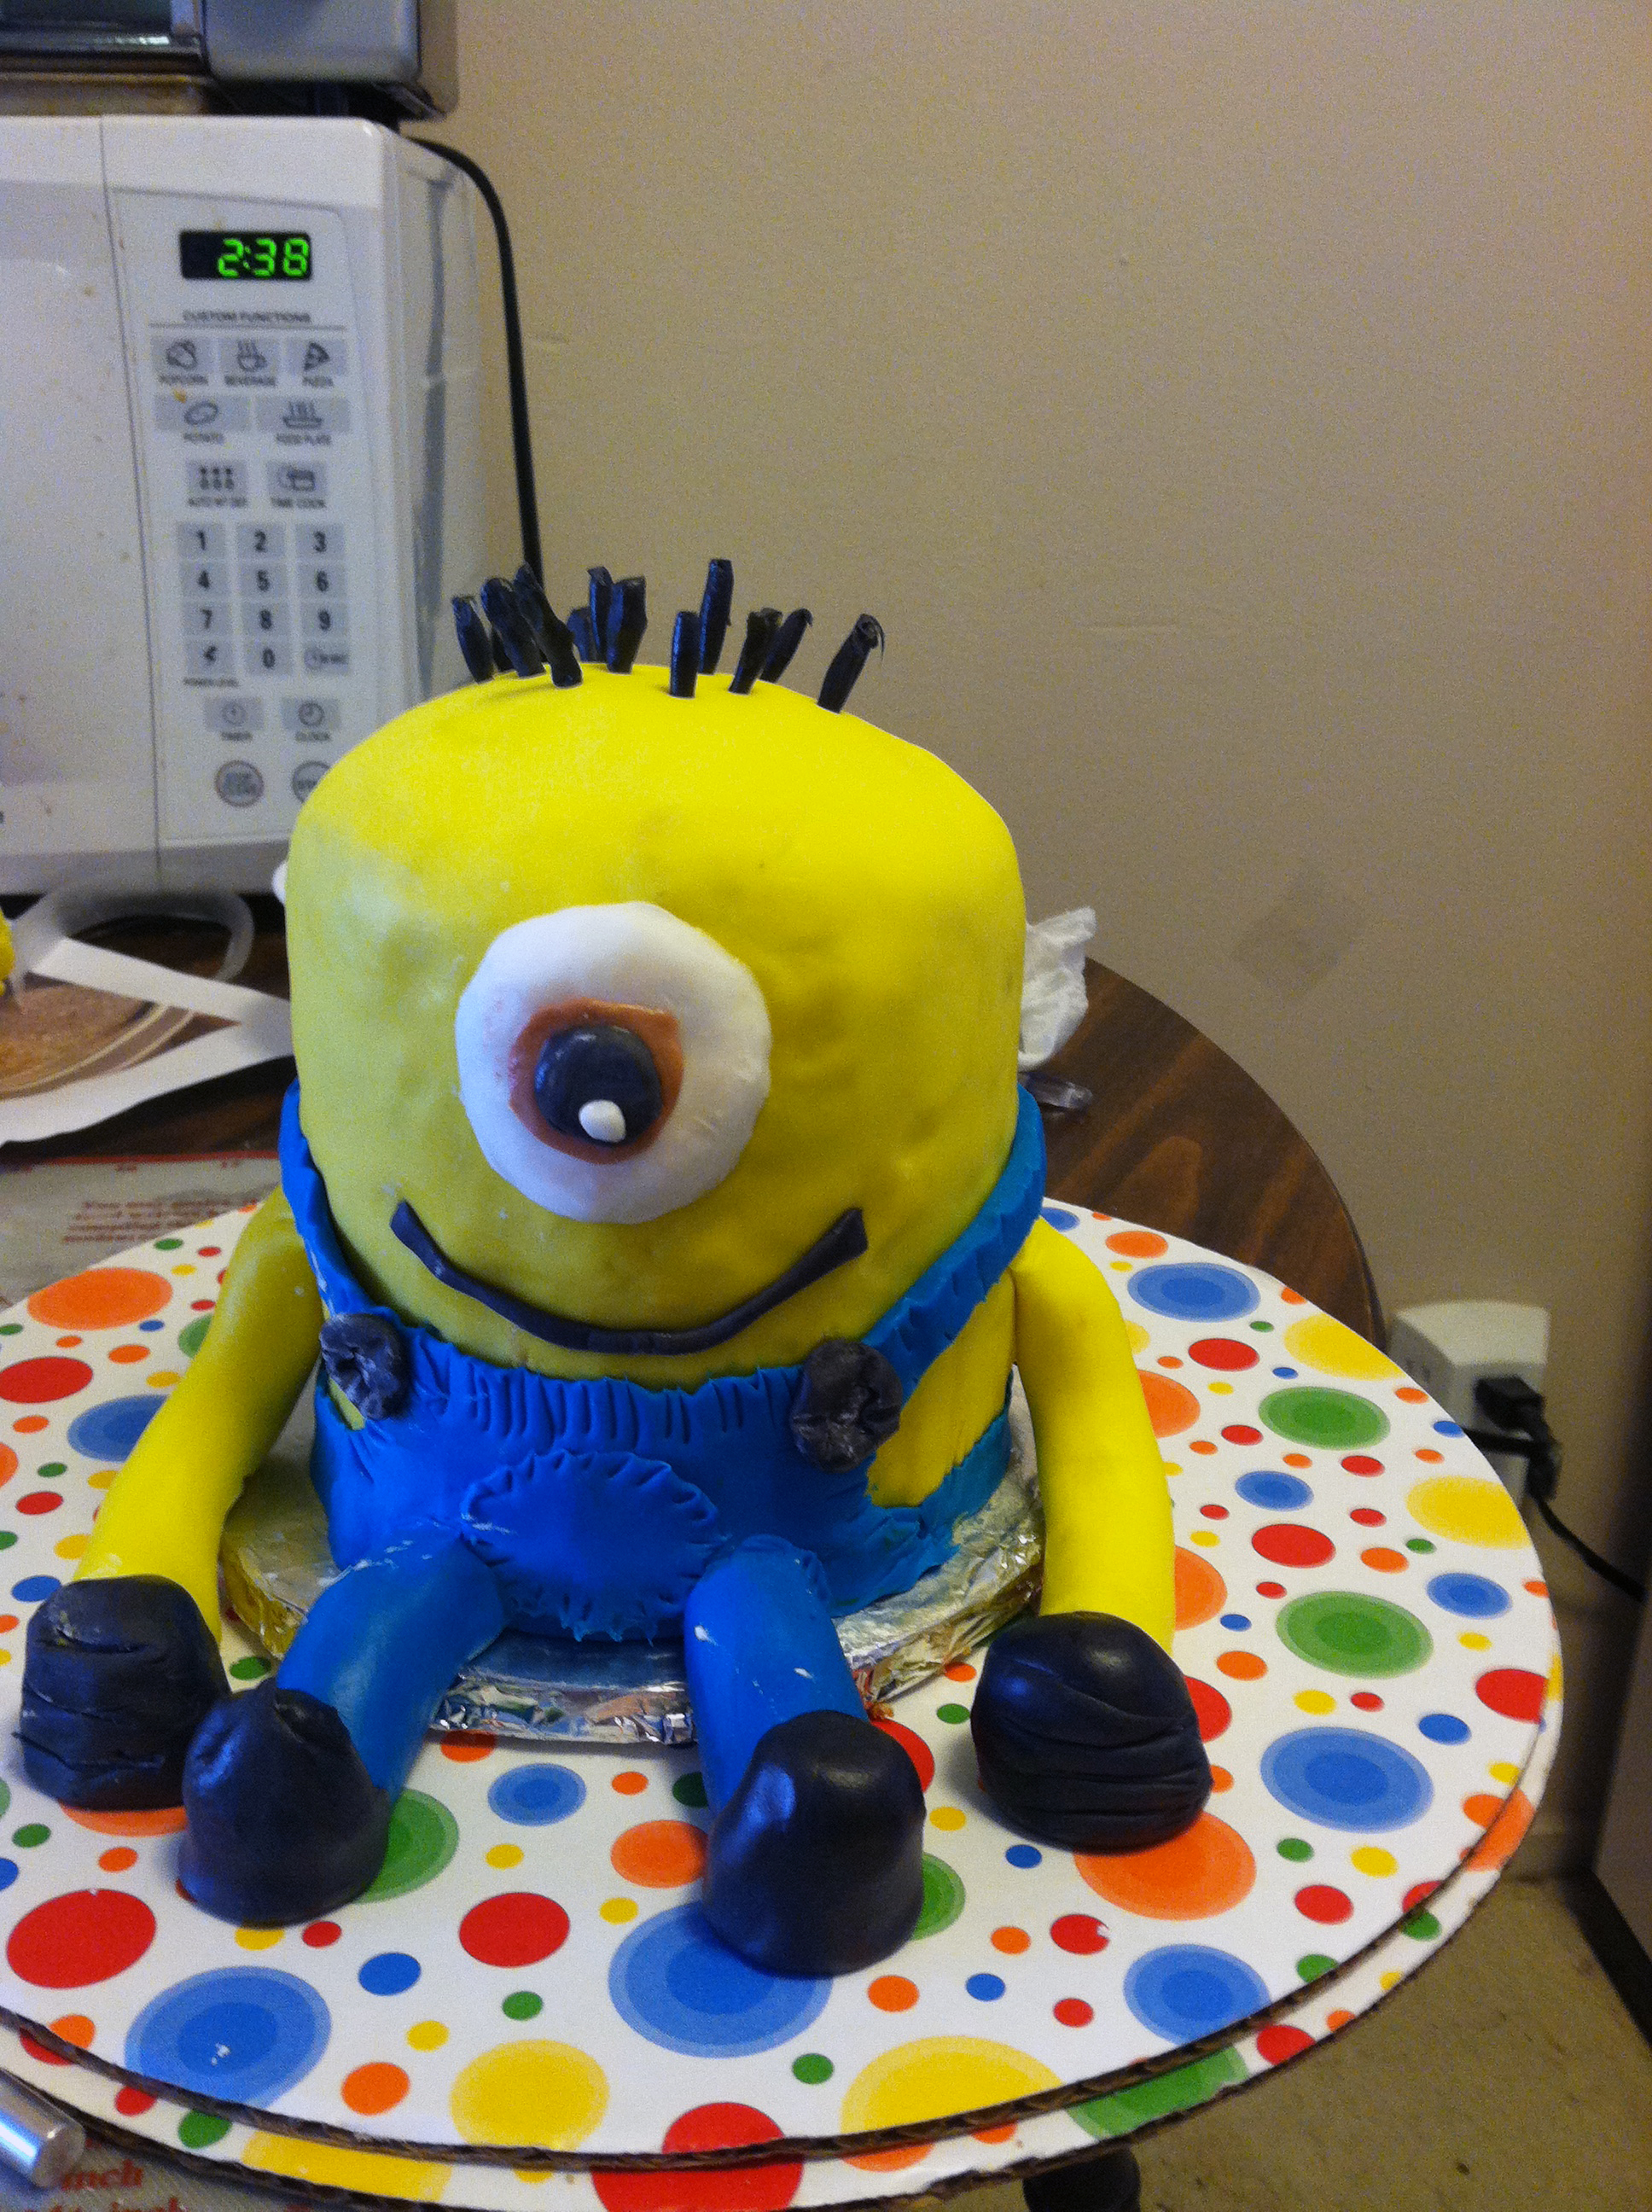 Despicable me minion cake bakers and best last add a goggle with accompanying strap to complete making your minion the fondant will help keep in moisture so you can keep this at room temperature baditri Image collections